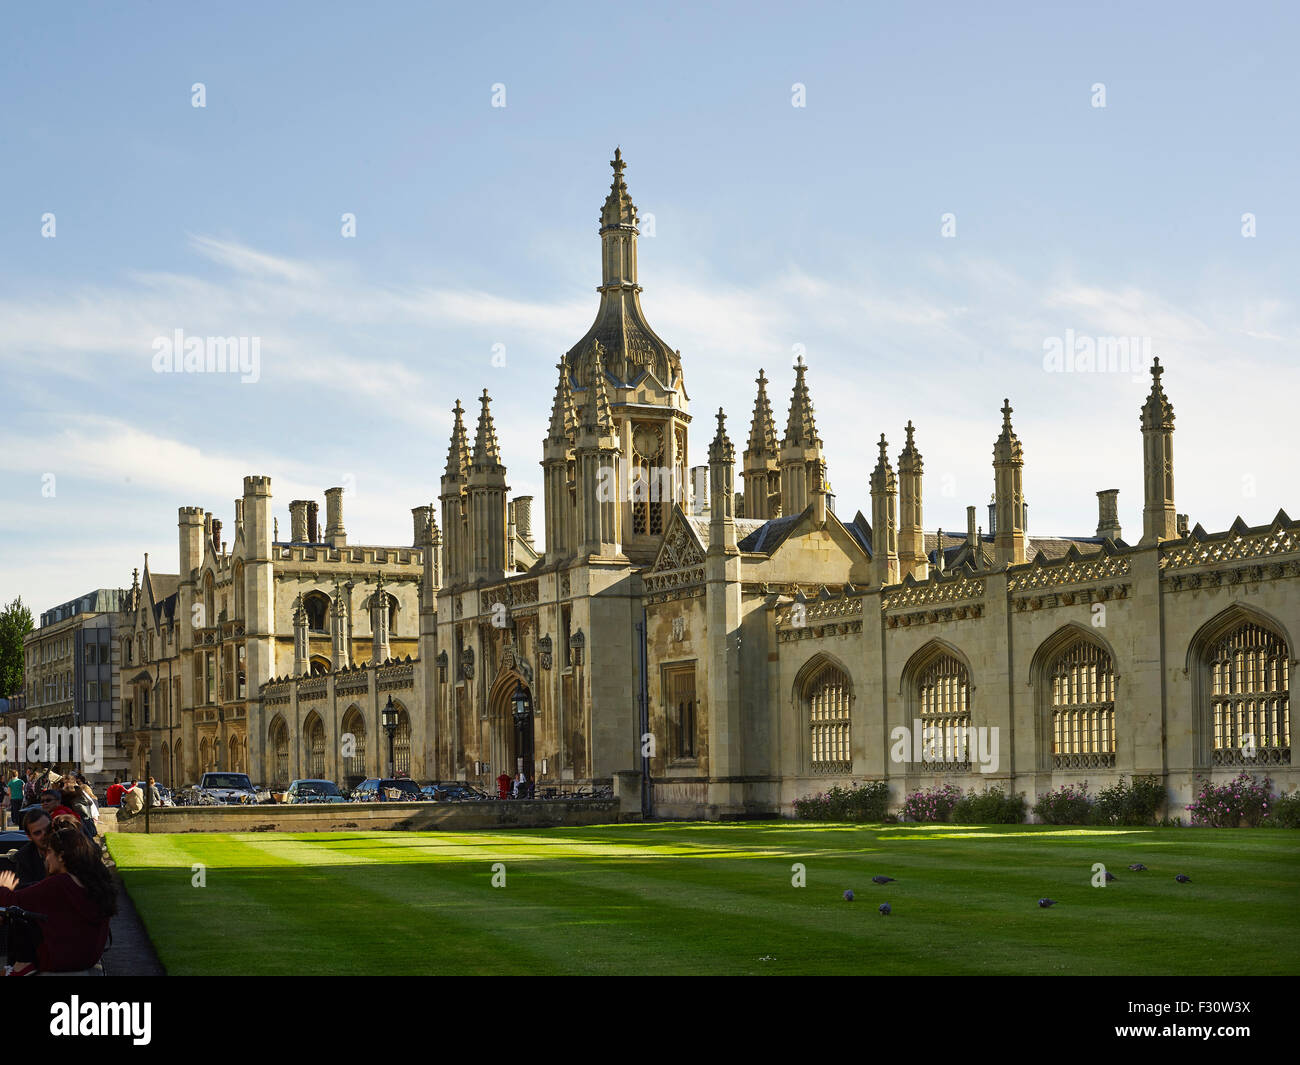 Cambridge, King's College, Great Court, screen and central gatehouse - Stock Image